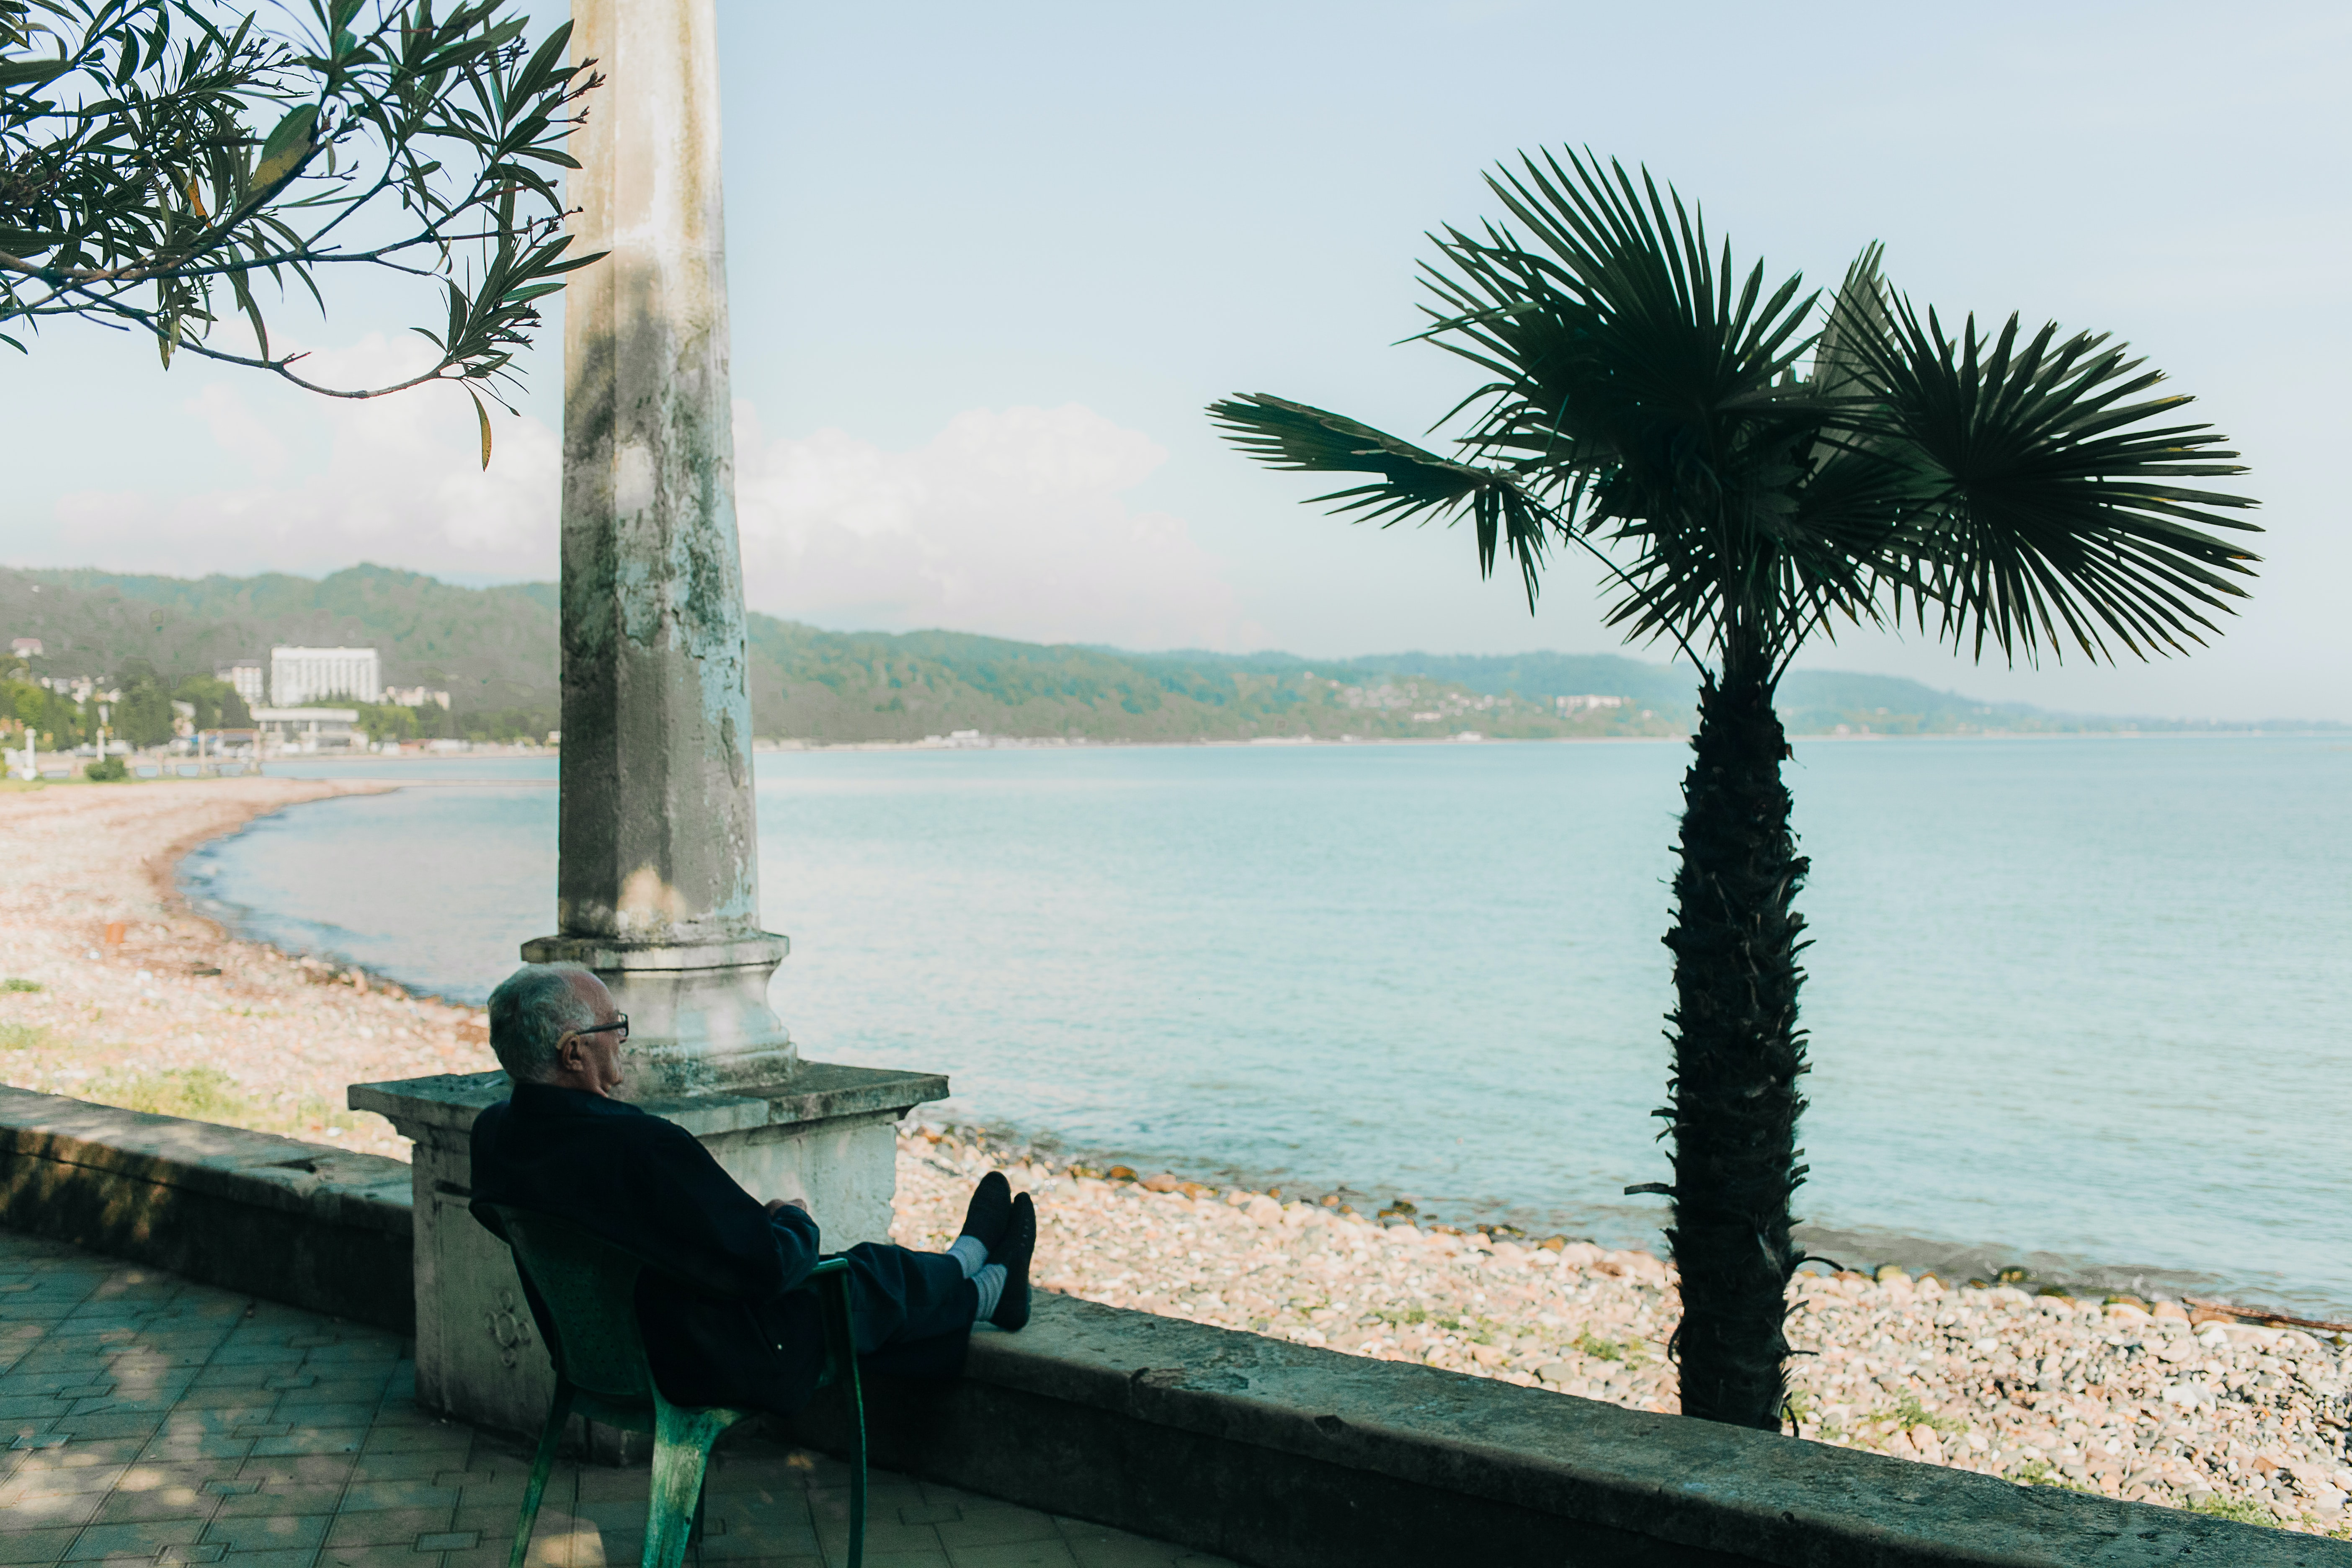 man wearing sitting on chair while watching sea